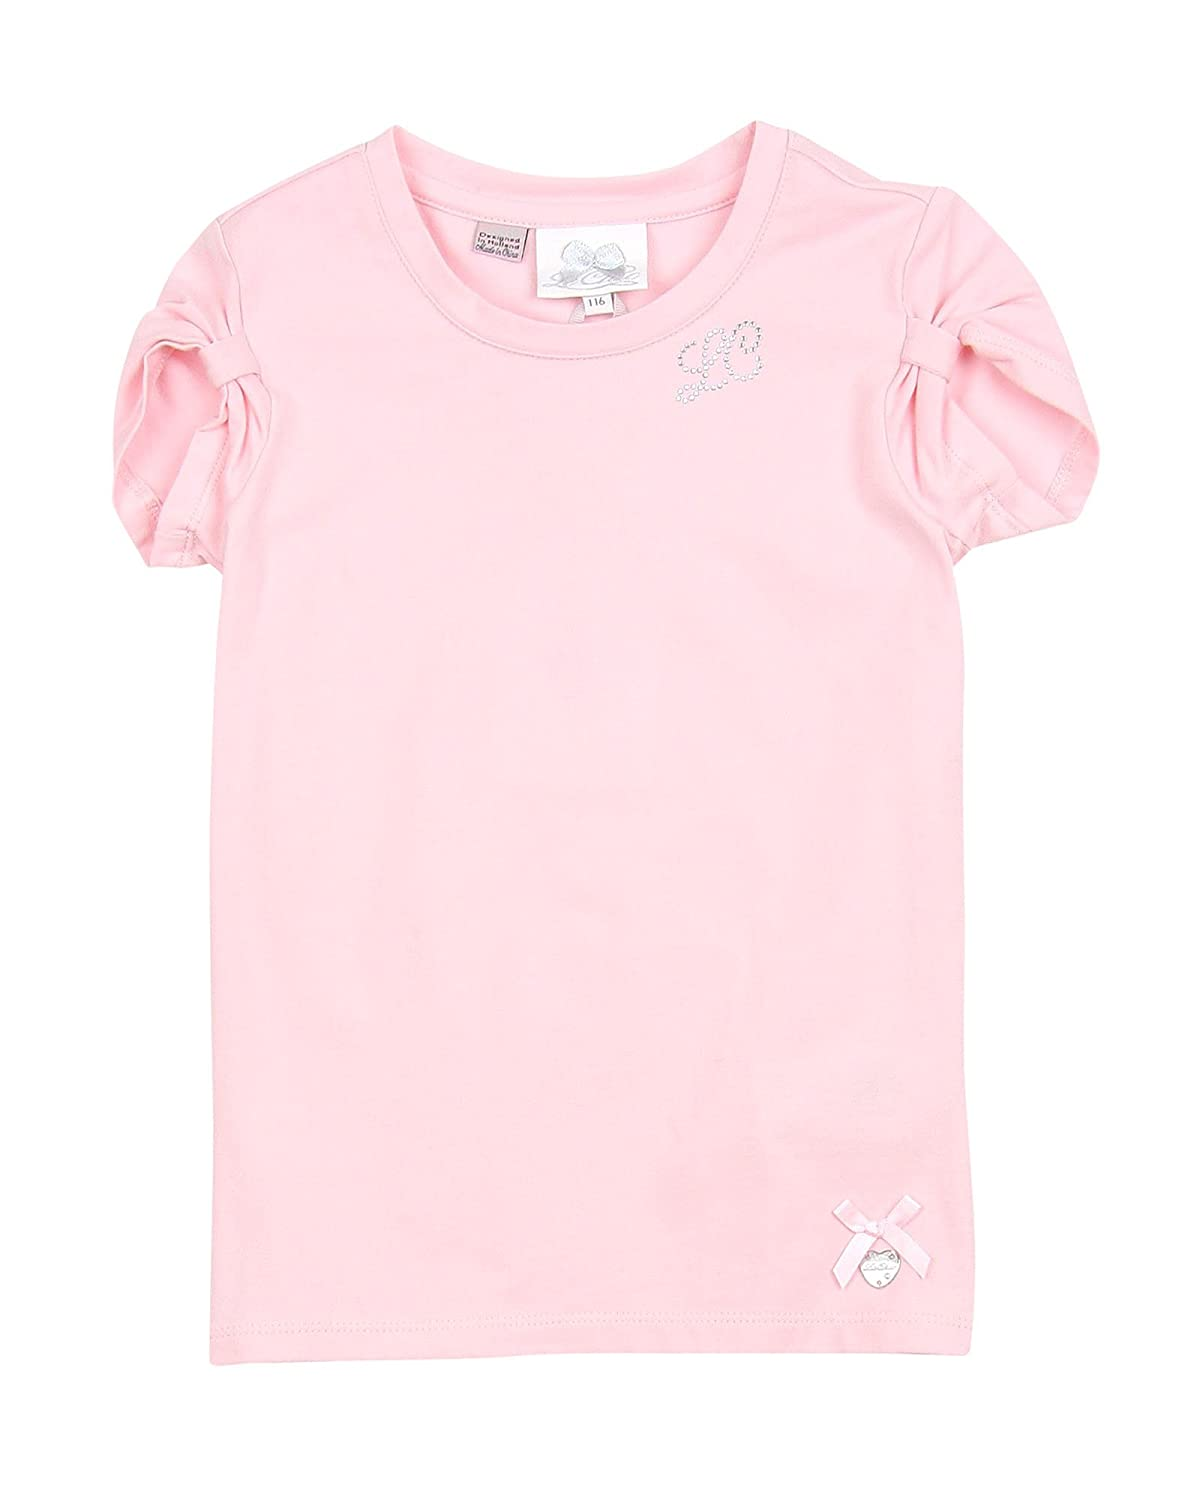 Le Chic Girls T-Shirt Gathered Sleeves Pink Sizes 3-12